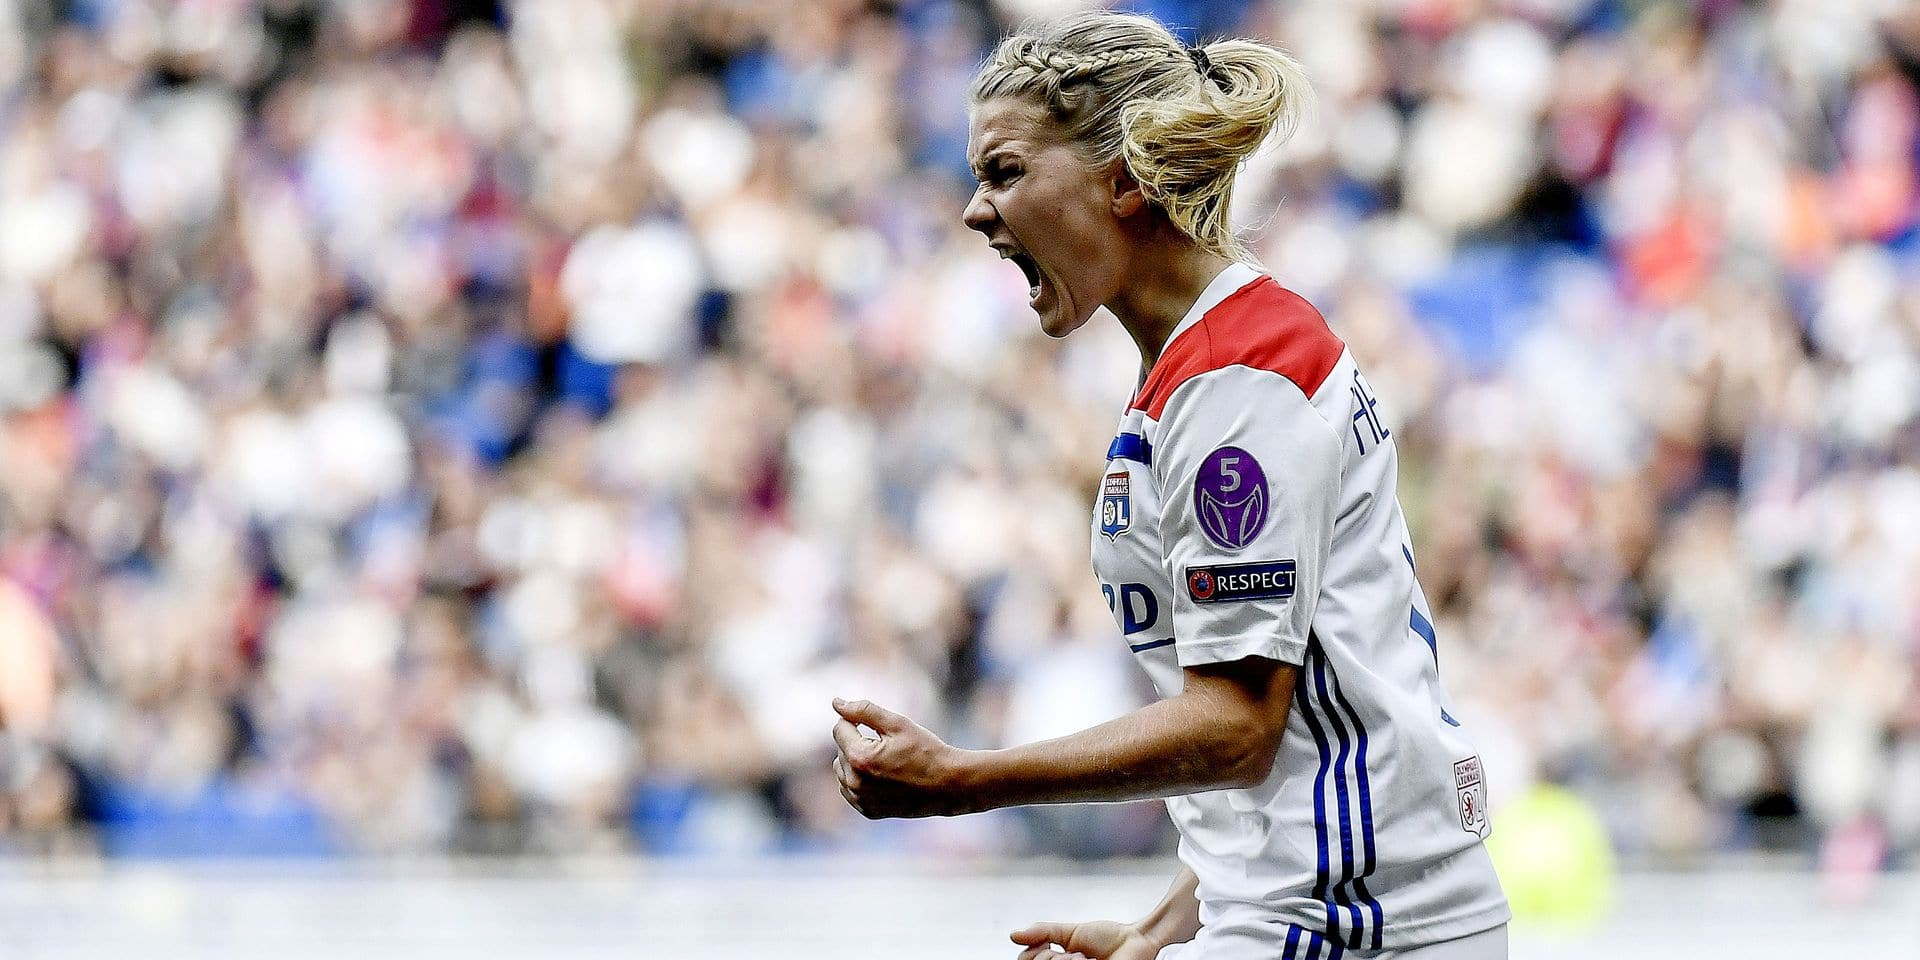 Lyon's Norwegian forward Ada Hegerberg celebrates after her teammate French forward Delphine Cascarino scored a goal during the Women UEFA Champions League semi-final football match Lyon vs Chelsea, on April 21, 2019 at the Parc Olympique Lyonnais stadium in Decines-Charpieu, central-eastern France. (Photo by JEFF PACHOUD / AFP)